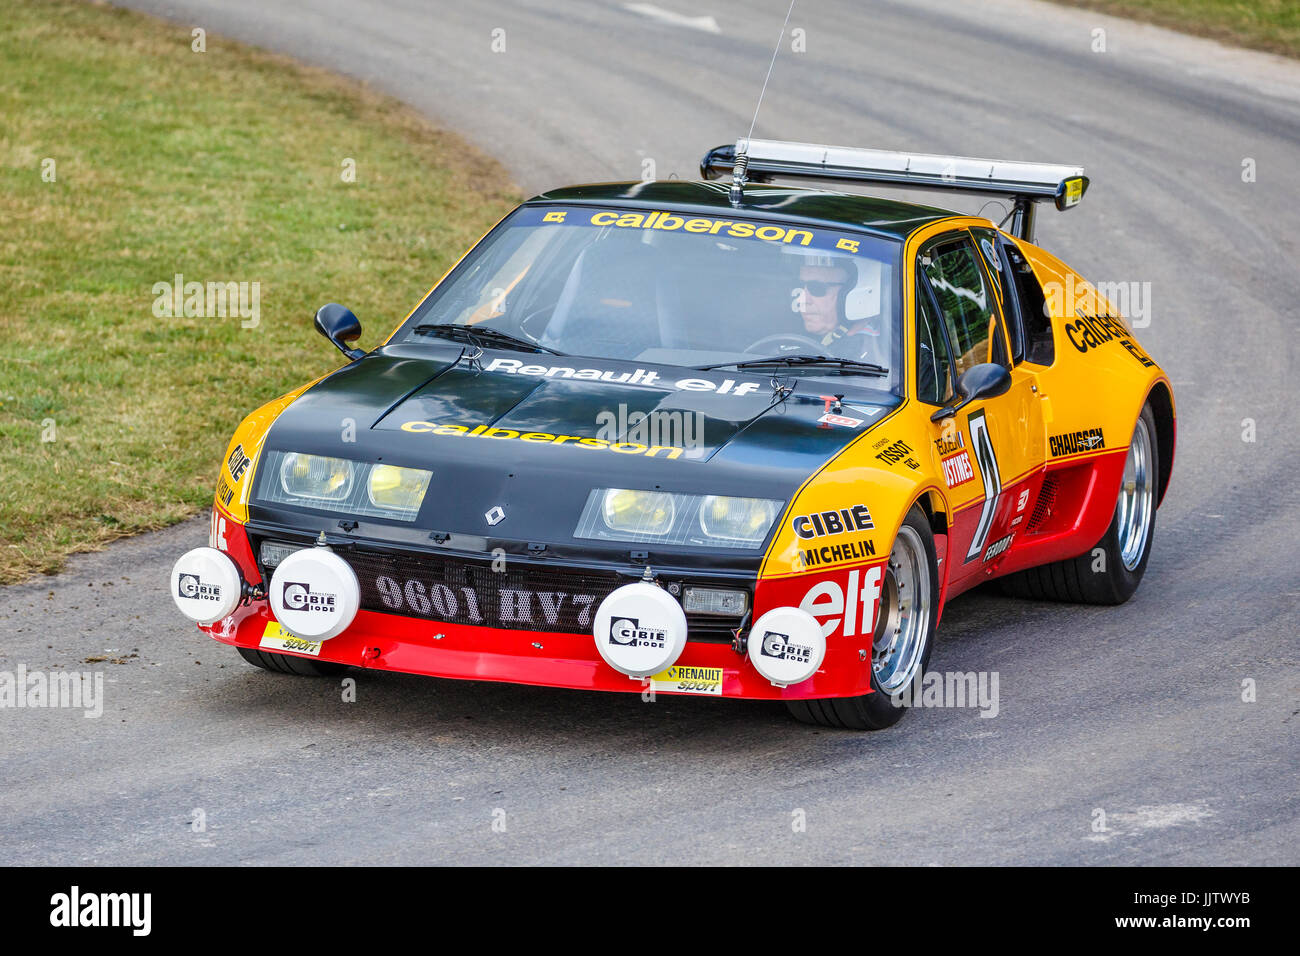 Chrono Alpine 1977-renault-alpine-a310-rally-car-at-the-2017-goodwood-festival-of-JJTWYB